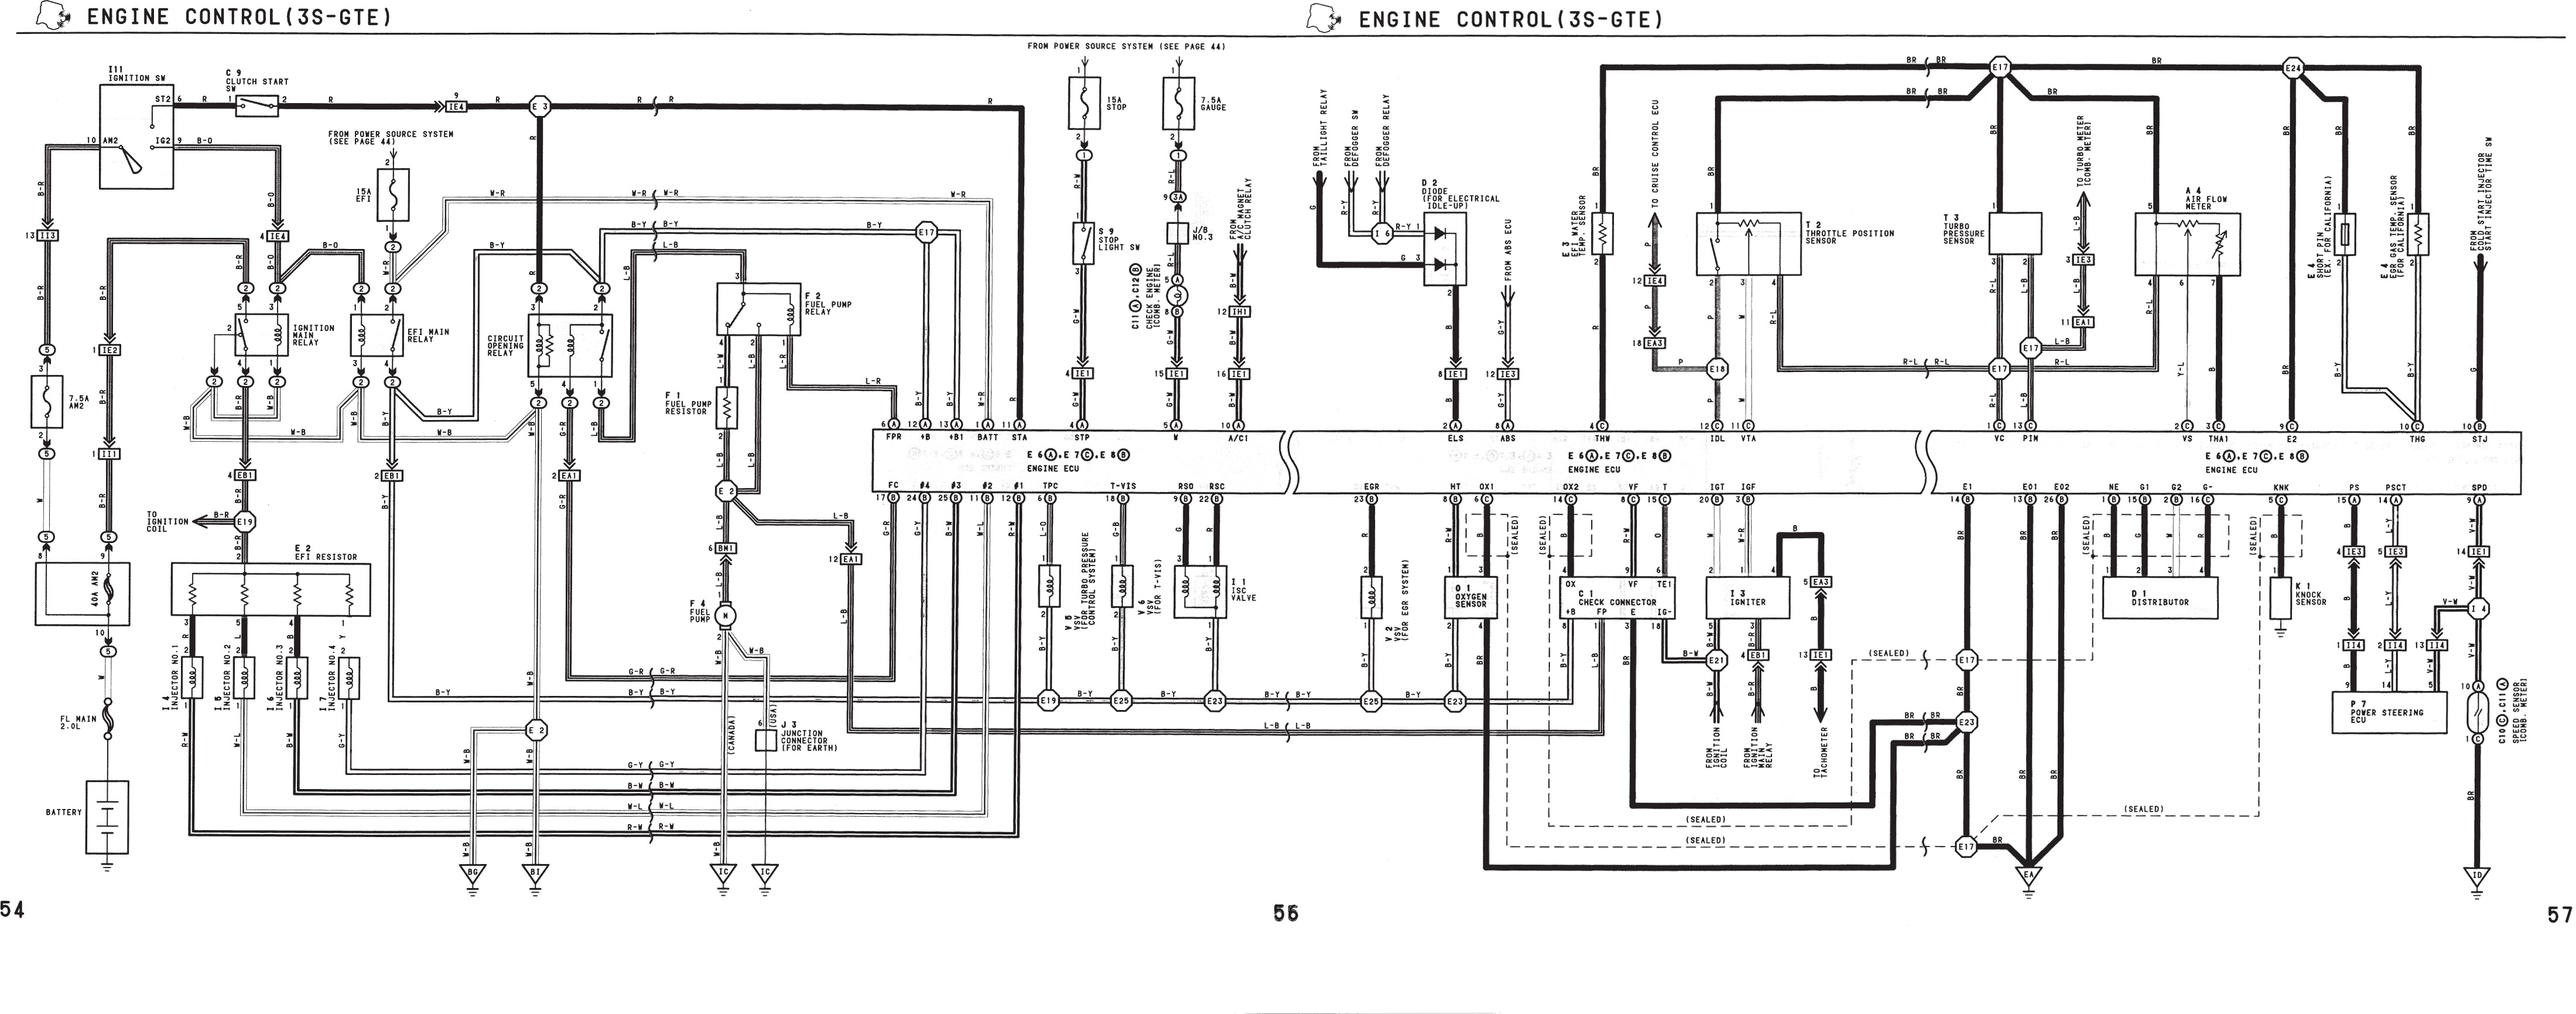 [DIAGRAM] Engine Electrical Diagram For Mr2 1991 FULL